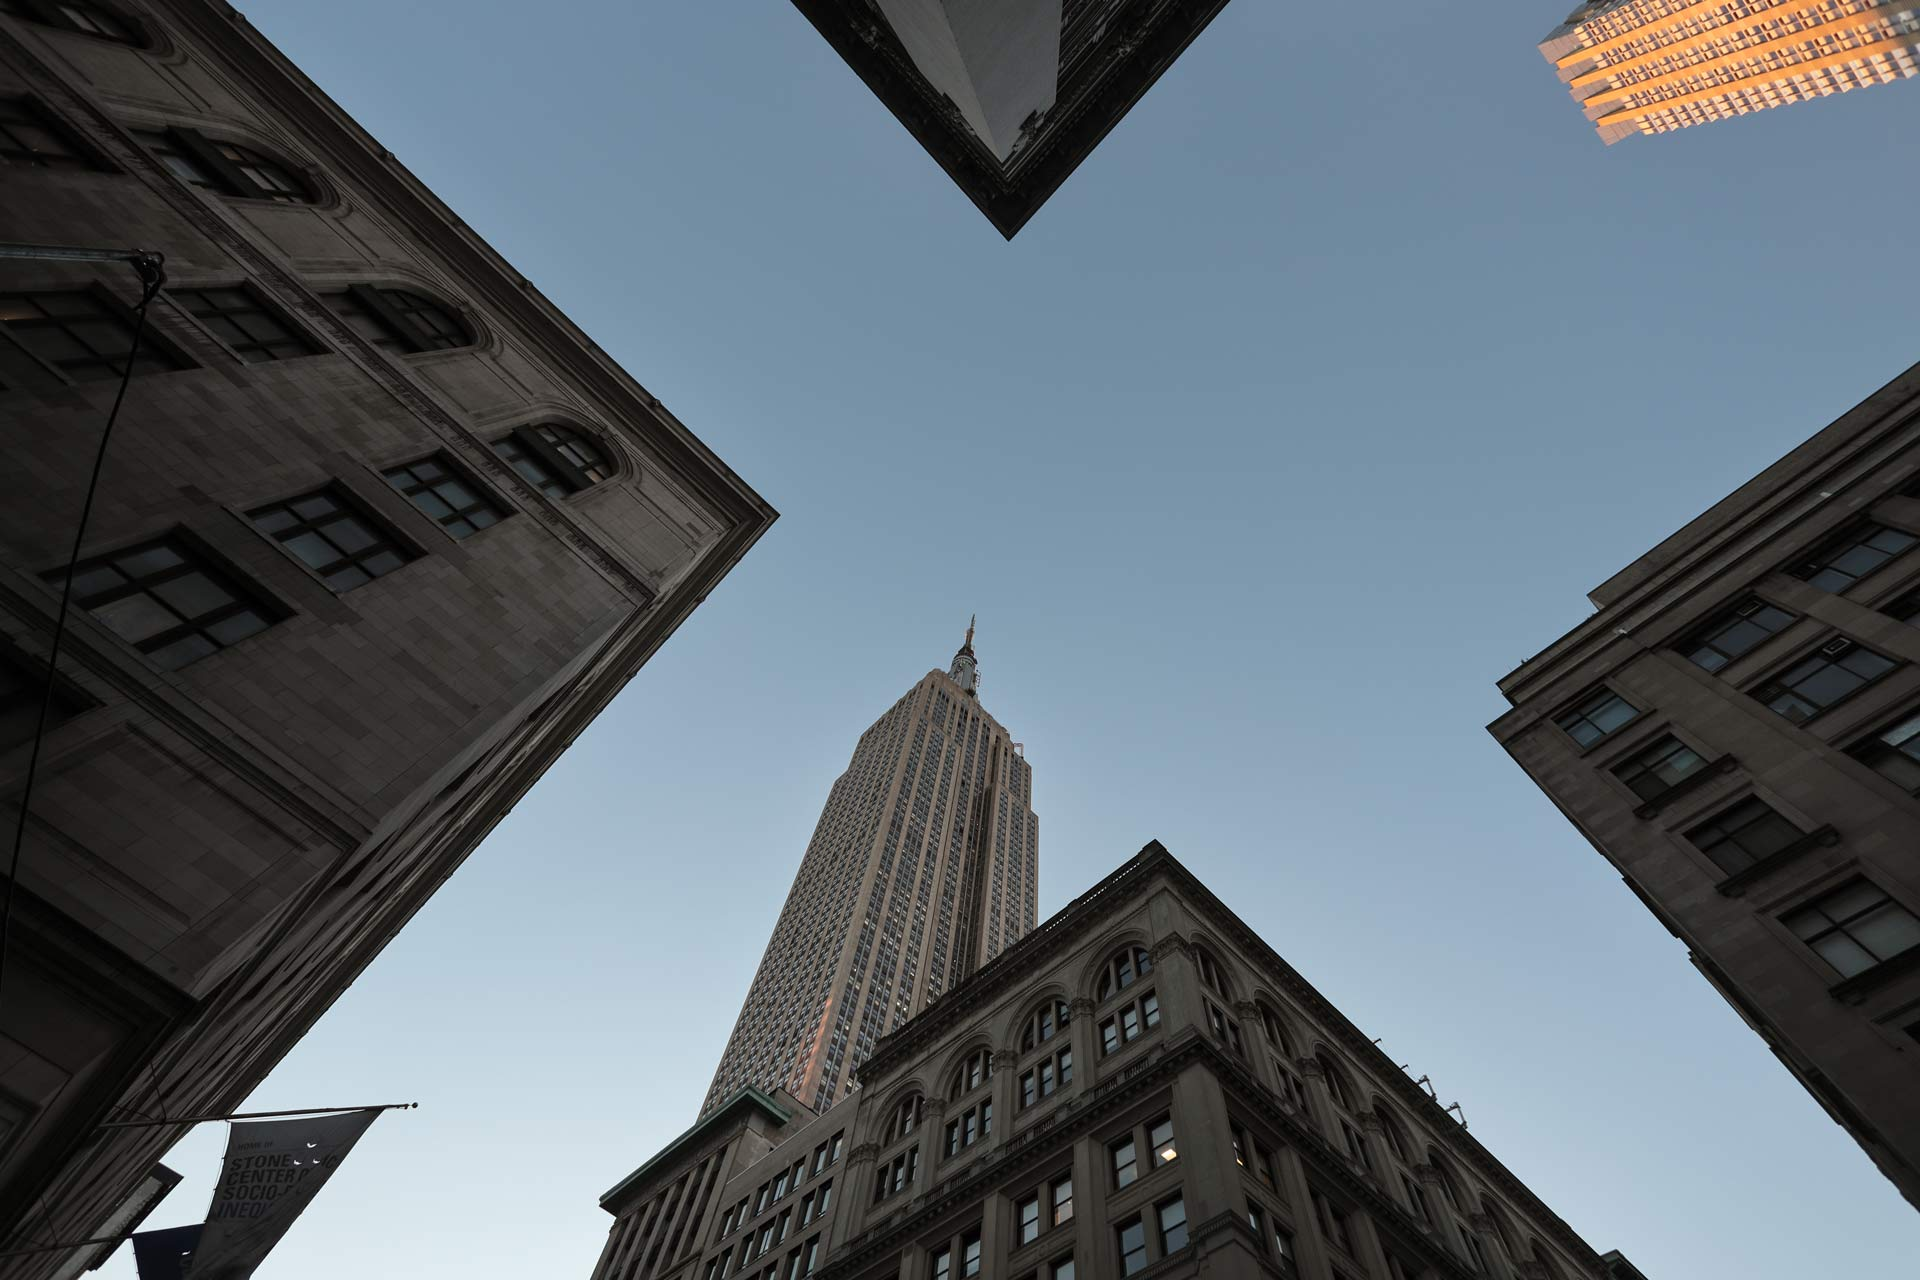 Downtown-Manhattan-New-York-City-Empire-State-Building